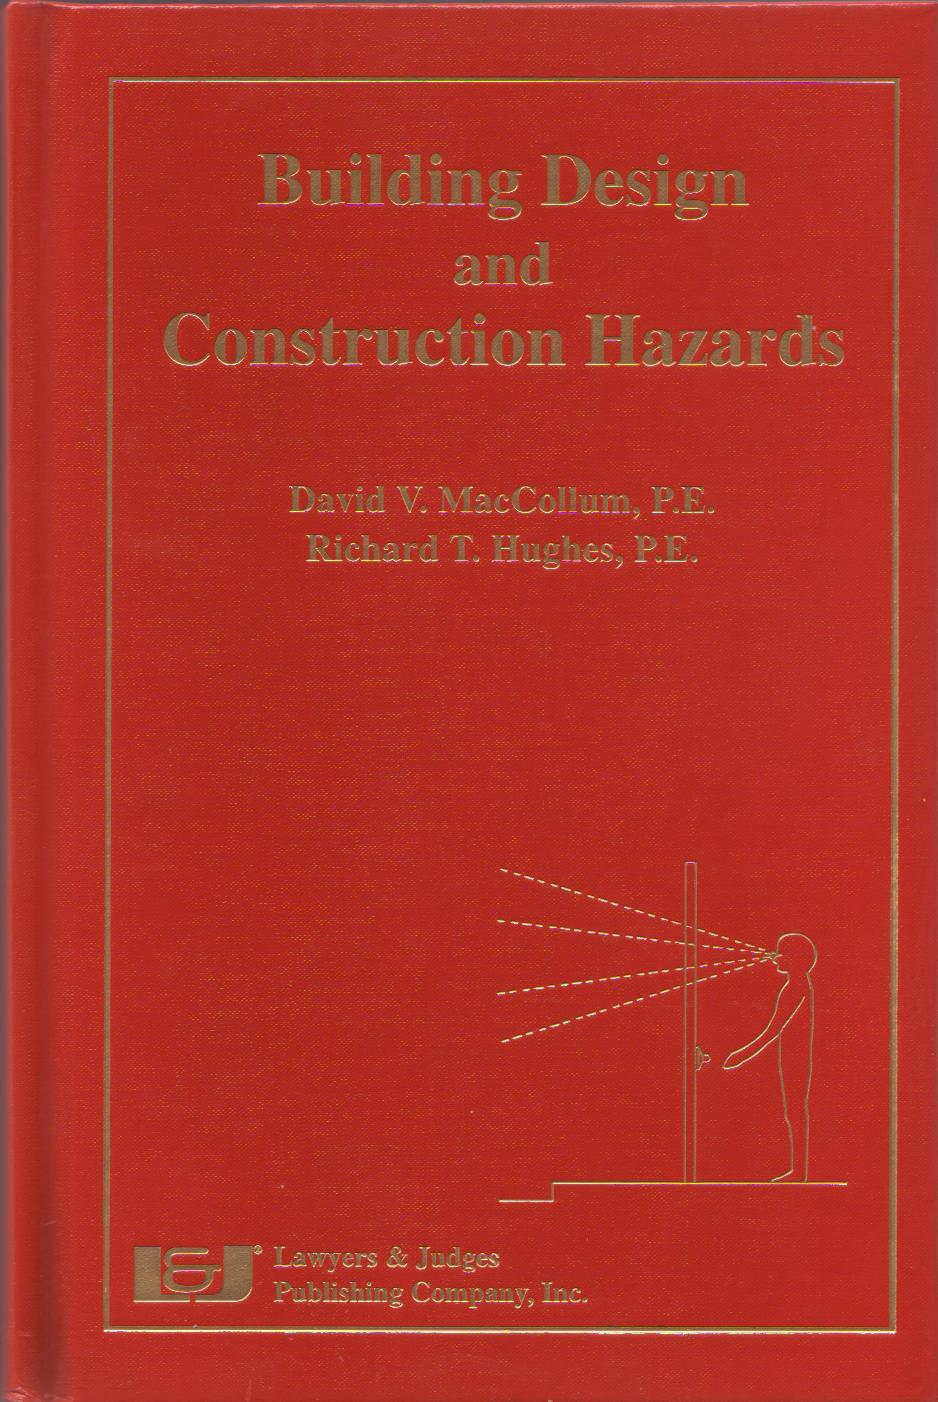 Building Design and Construction Hazards